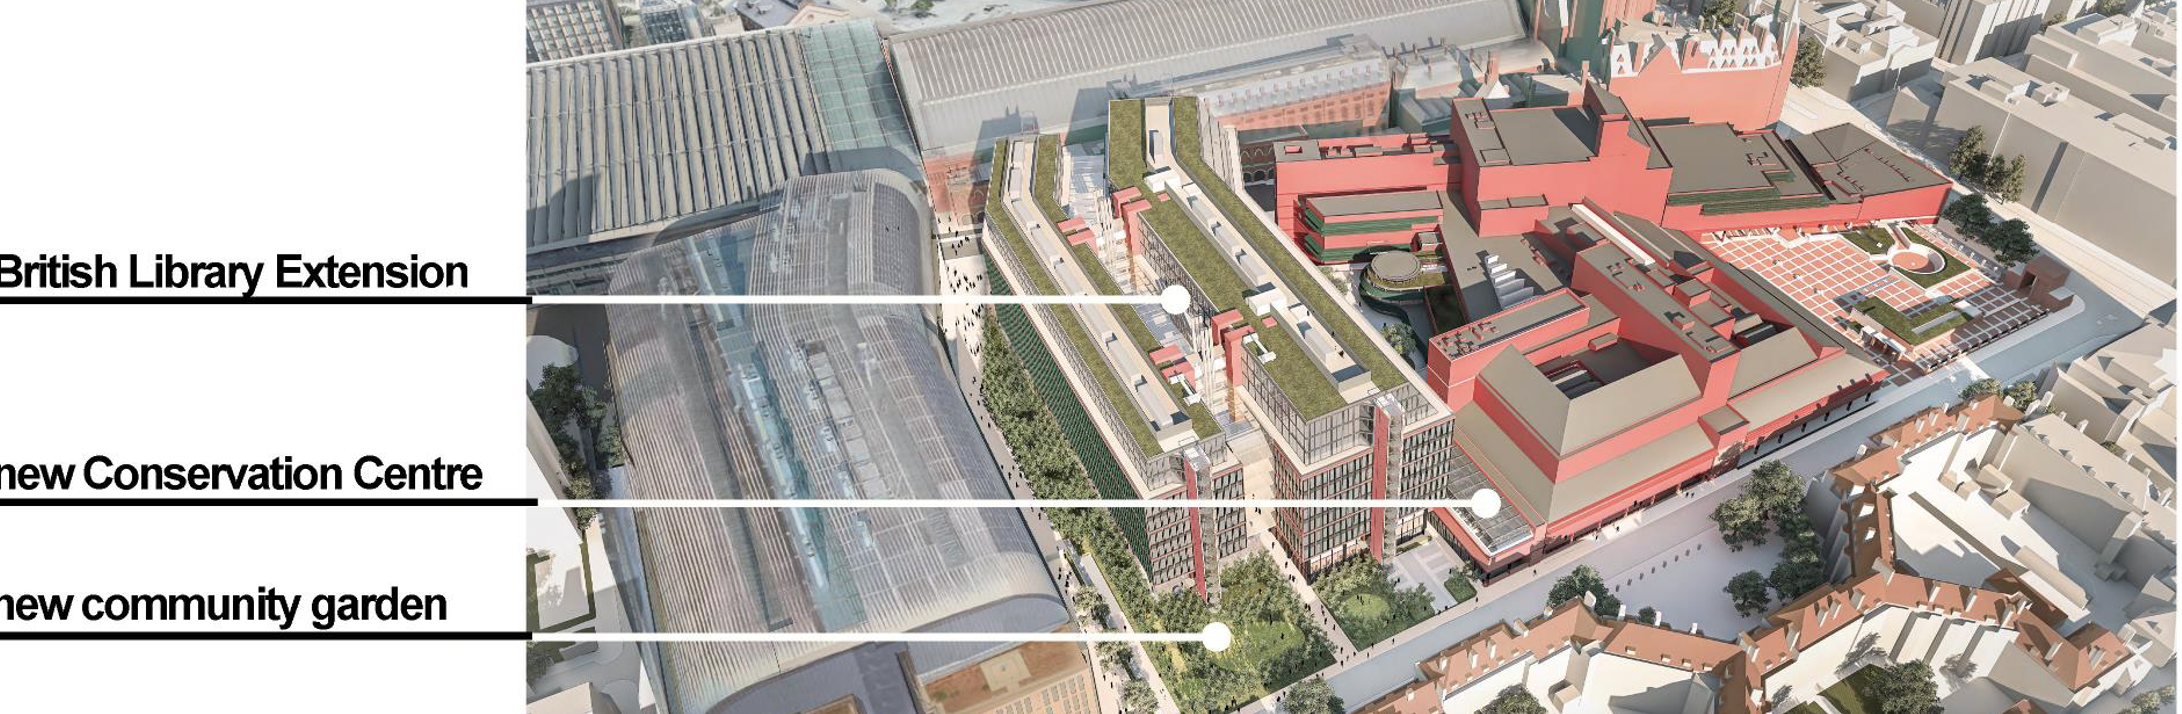 Aerial view of British Library